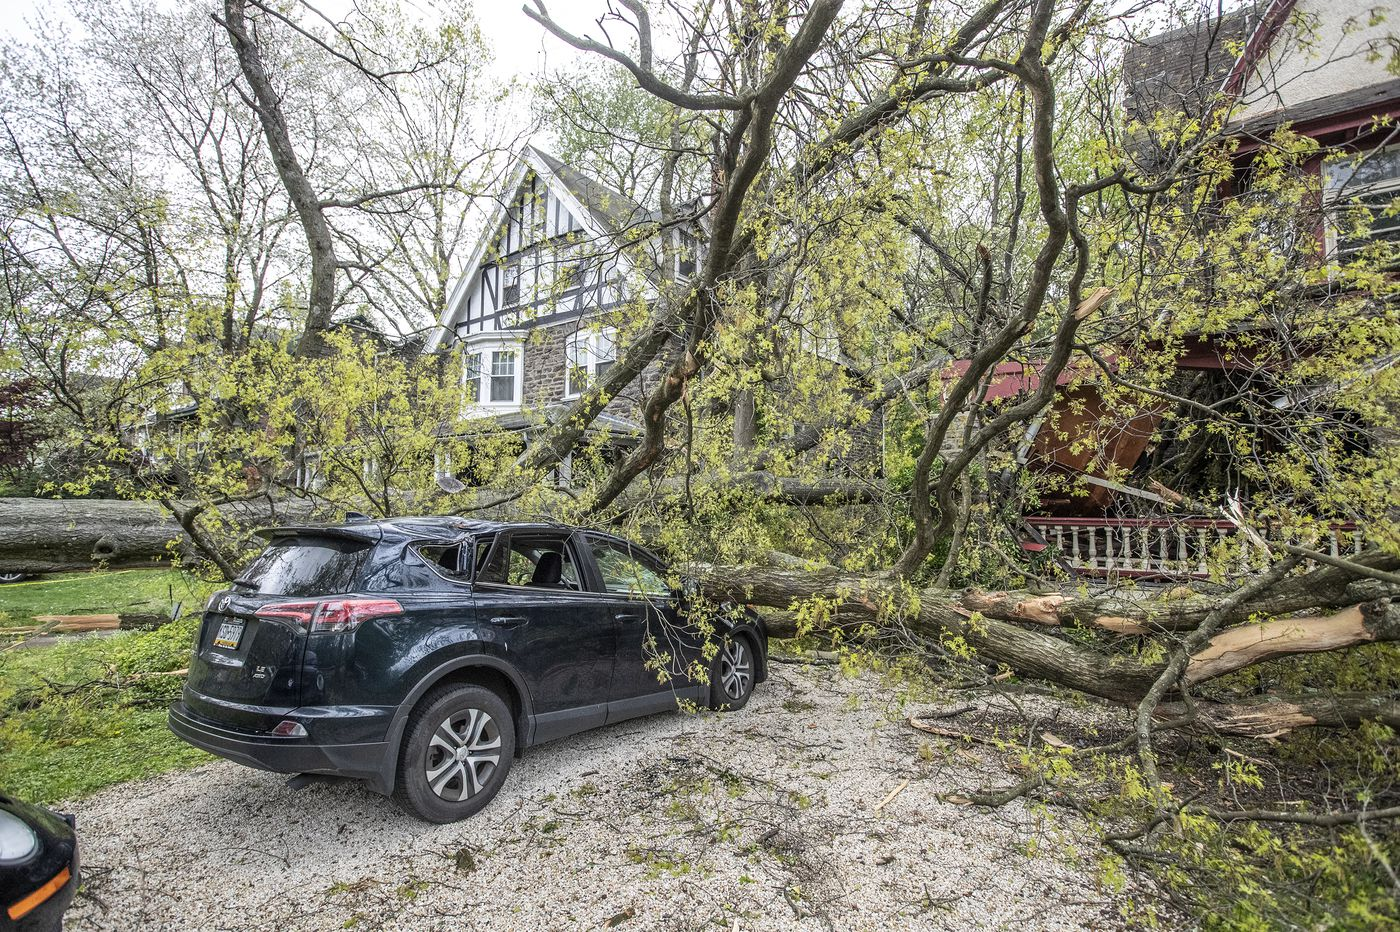 High winds cause damage, power outages across Philly region